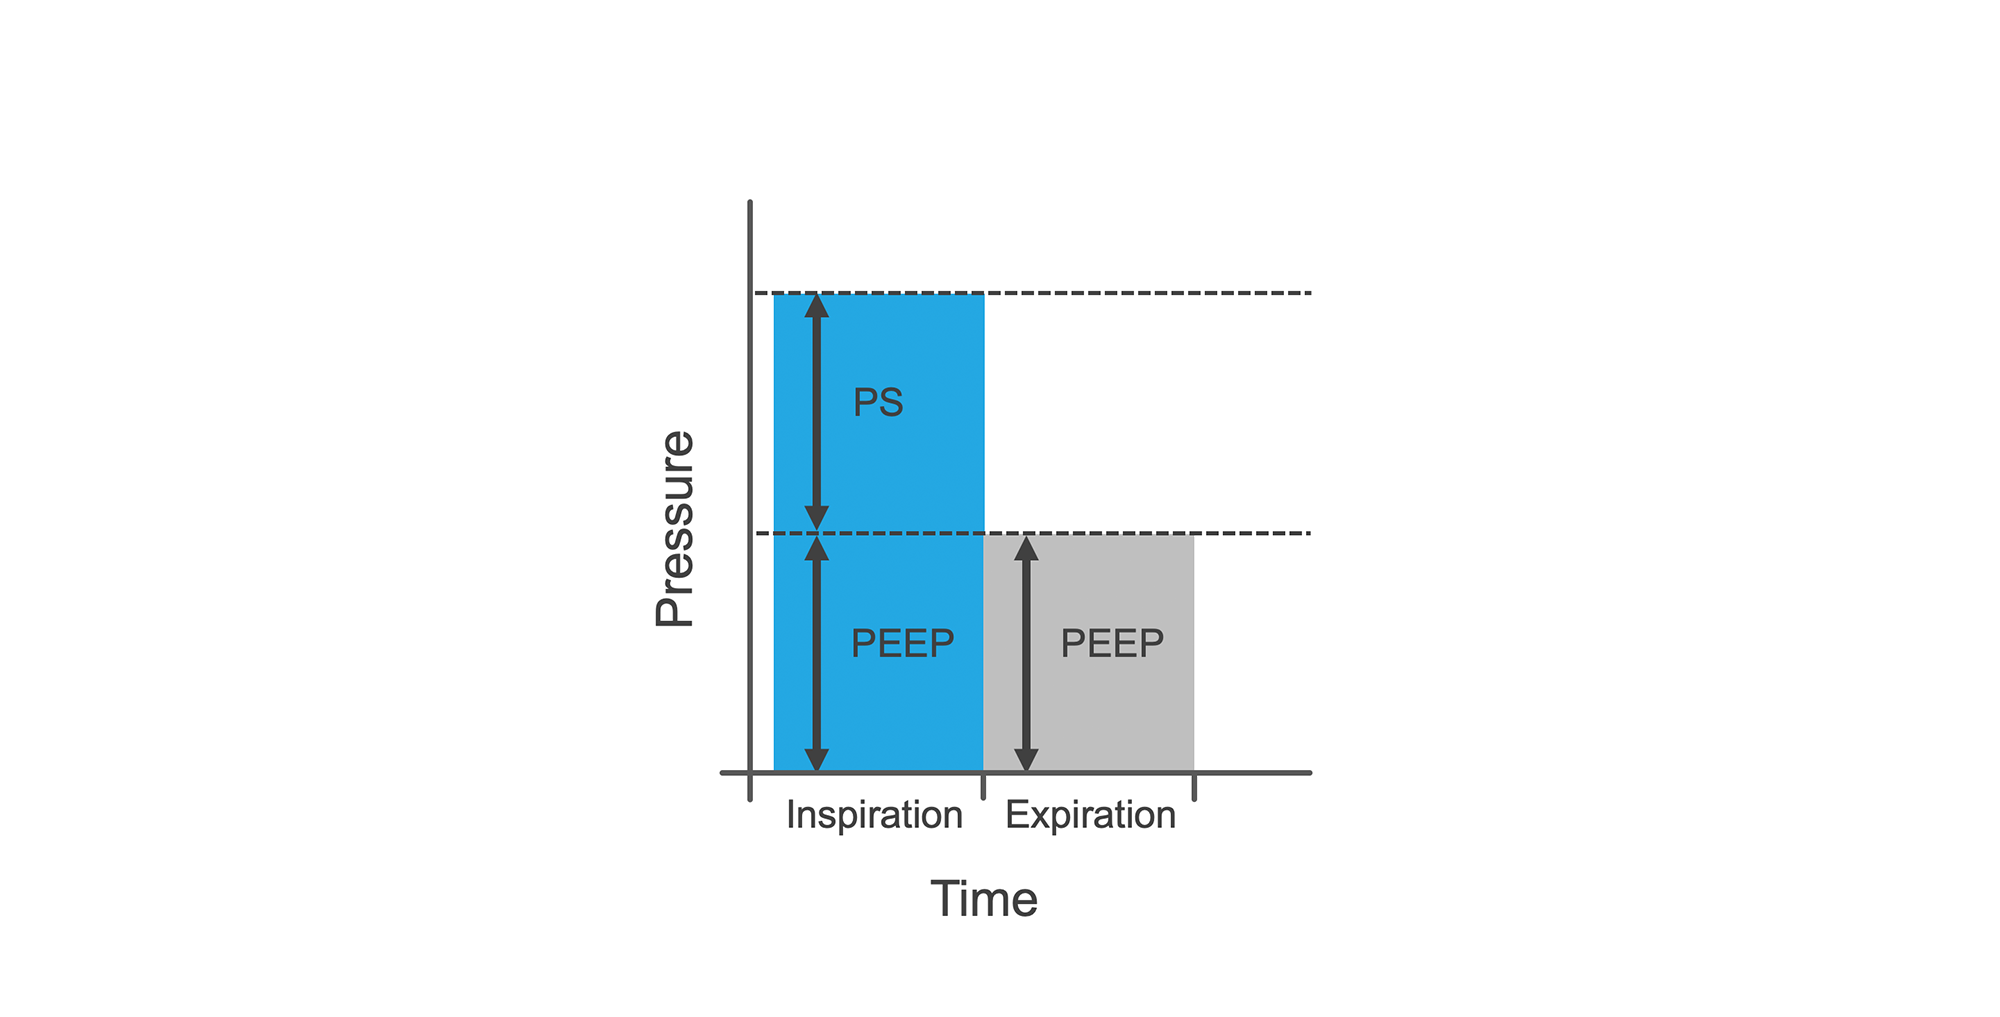 Graph of PEEP and PS in BPAP.